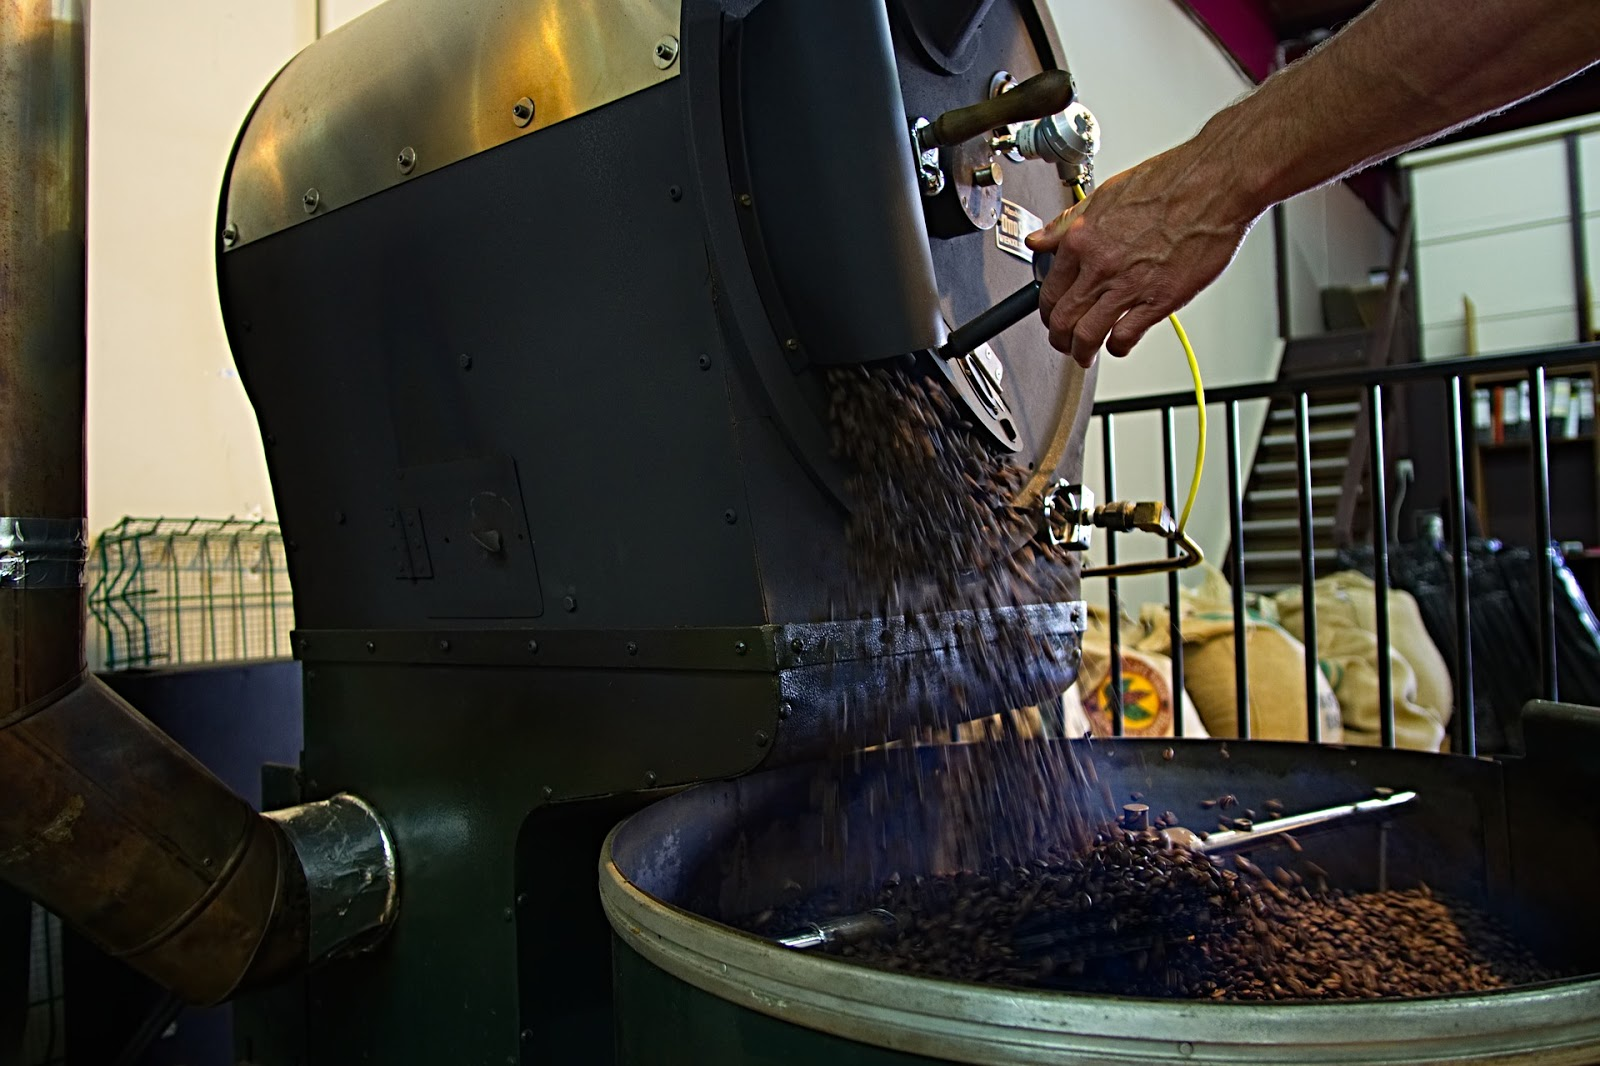 a man dispensing roasted coffee beans from a coffee bean roaster